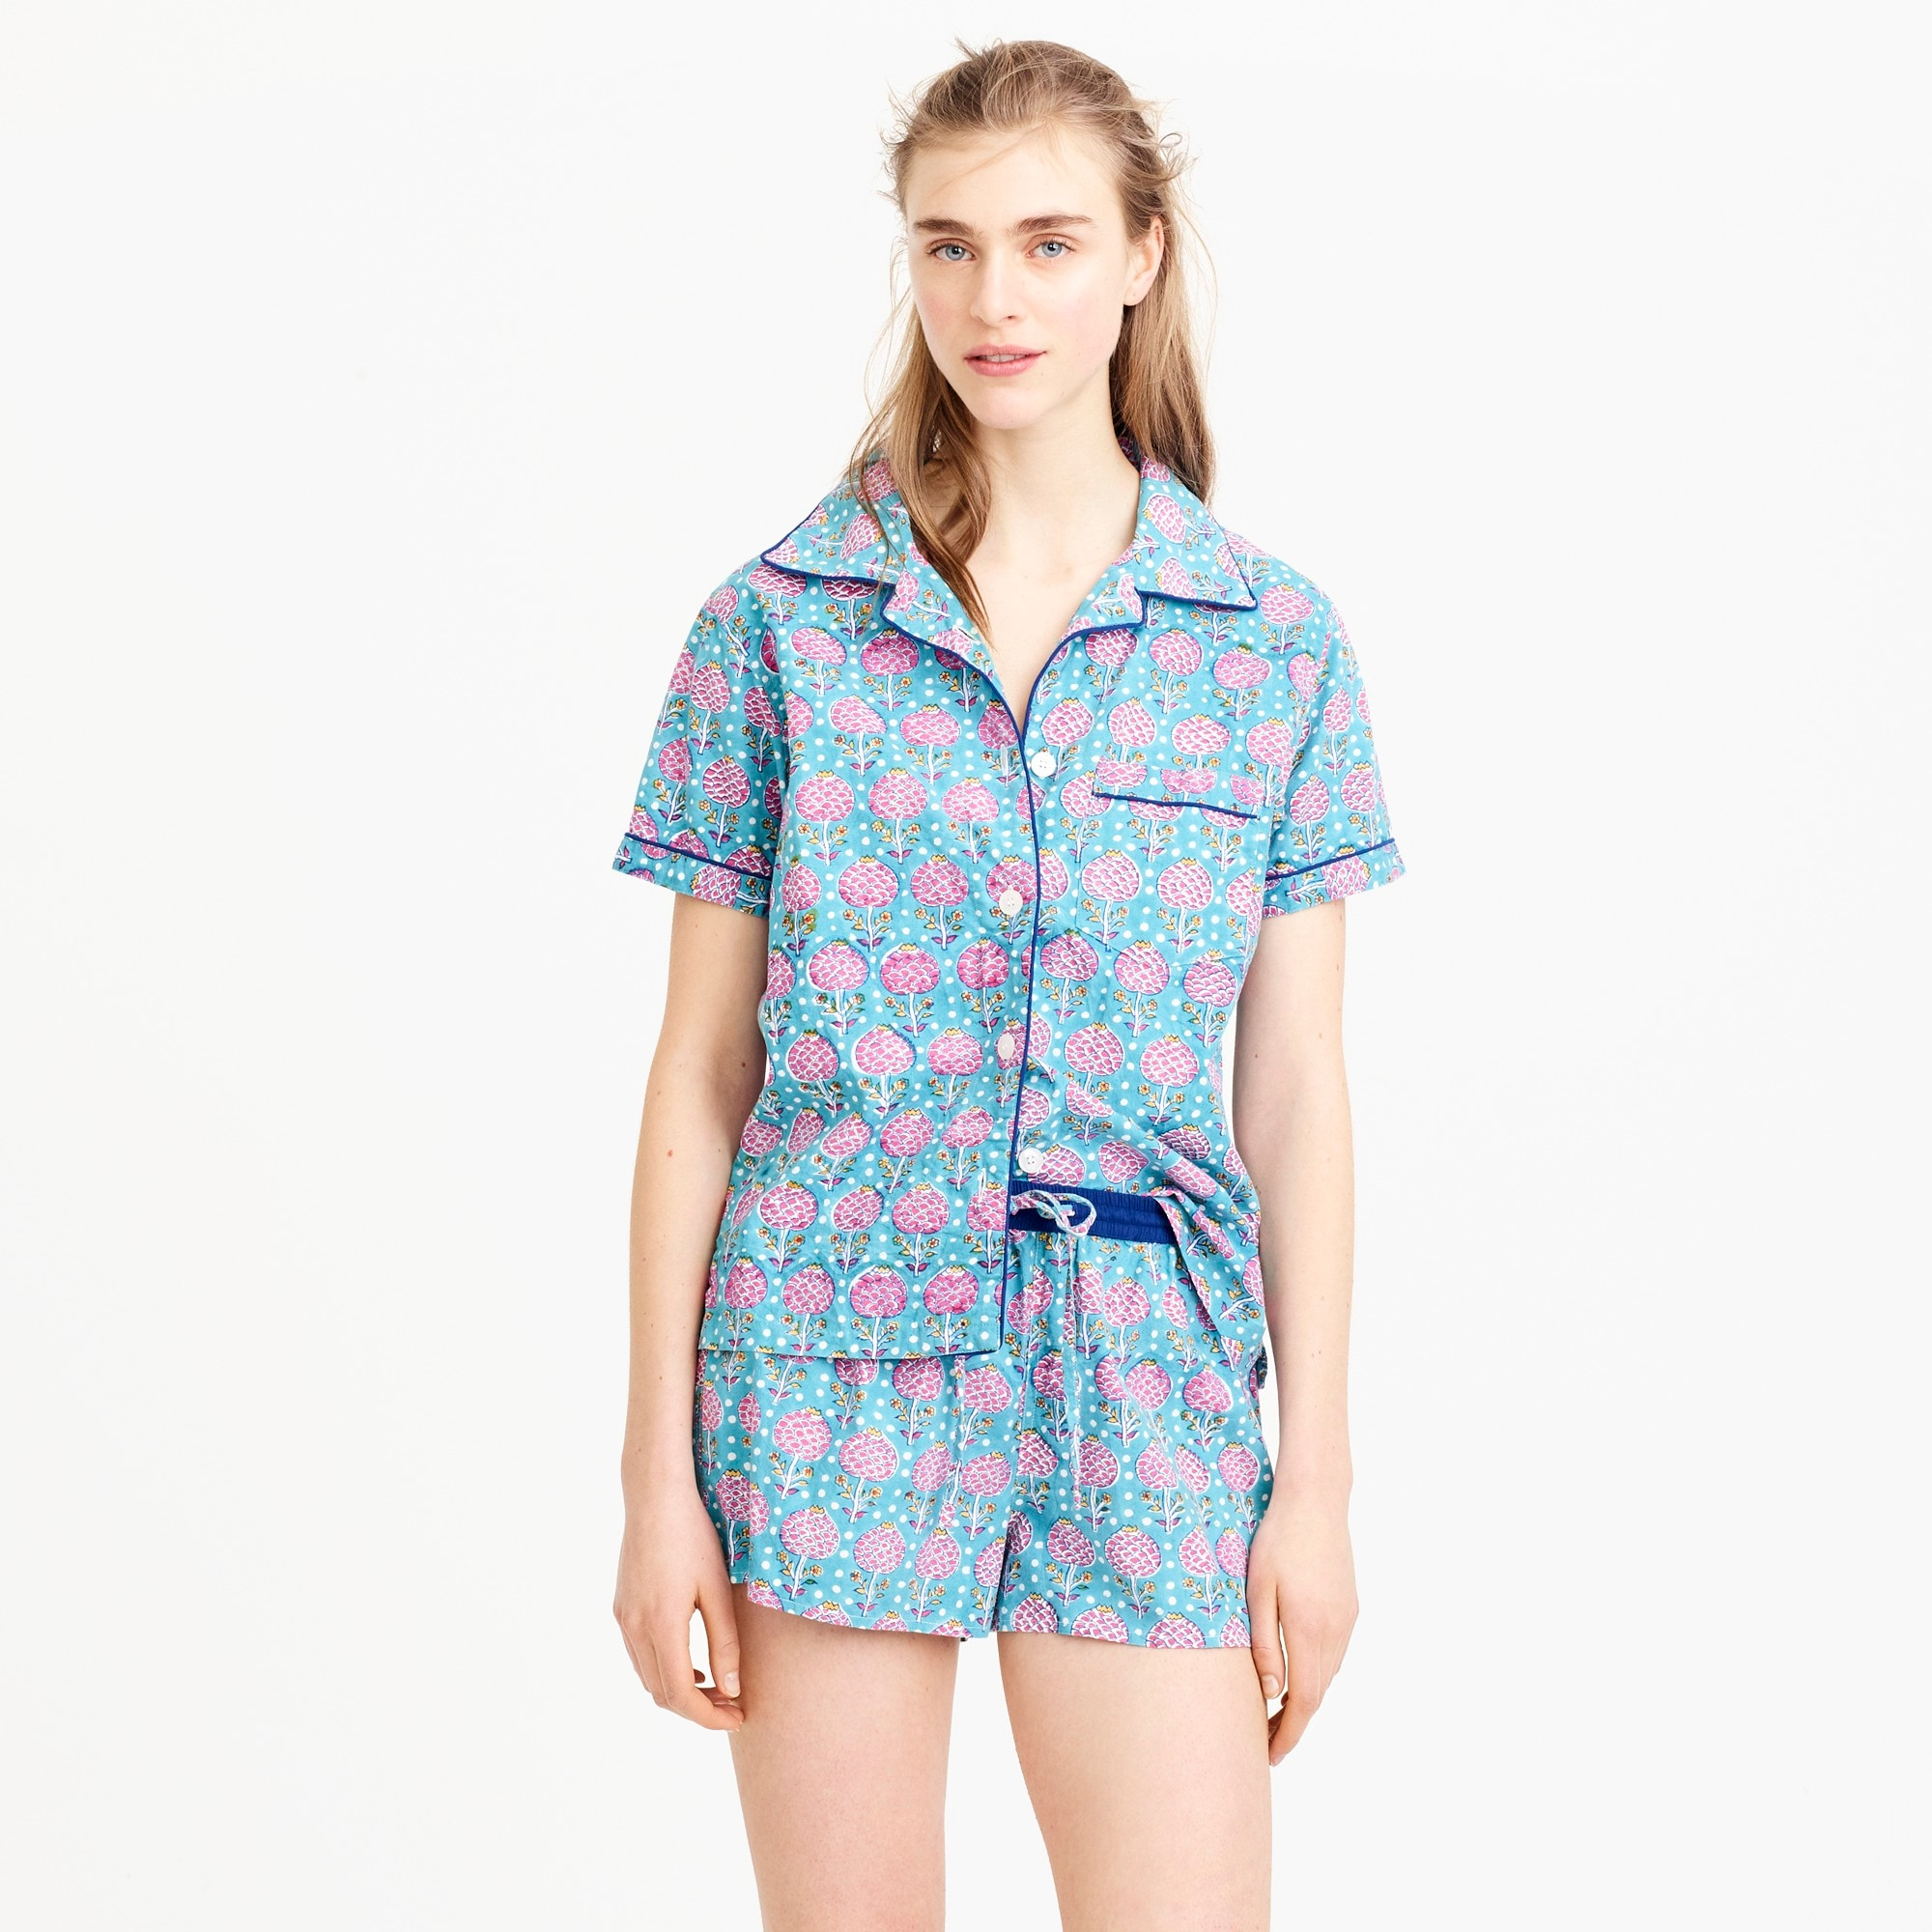 SZ Blockprints™ for J.Crew short sleep set women j.crew in good company c